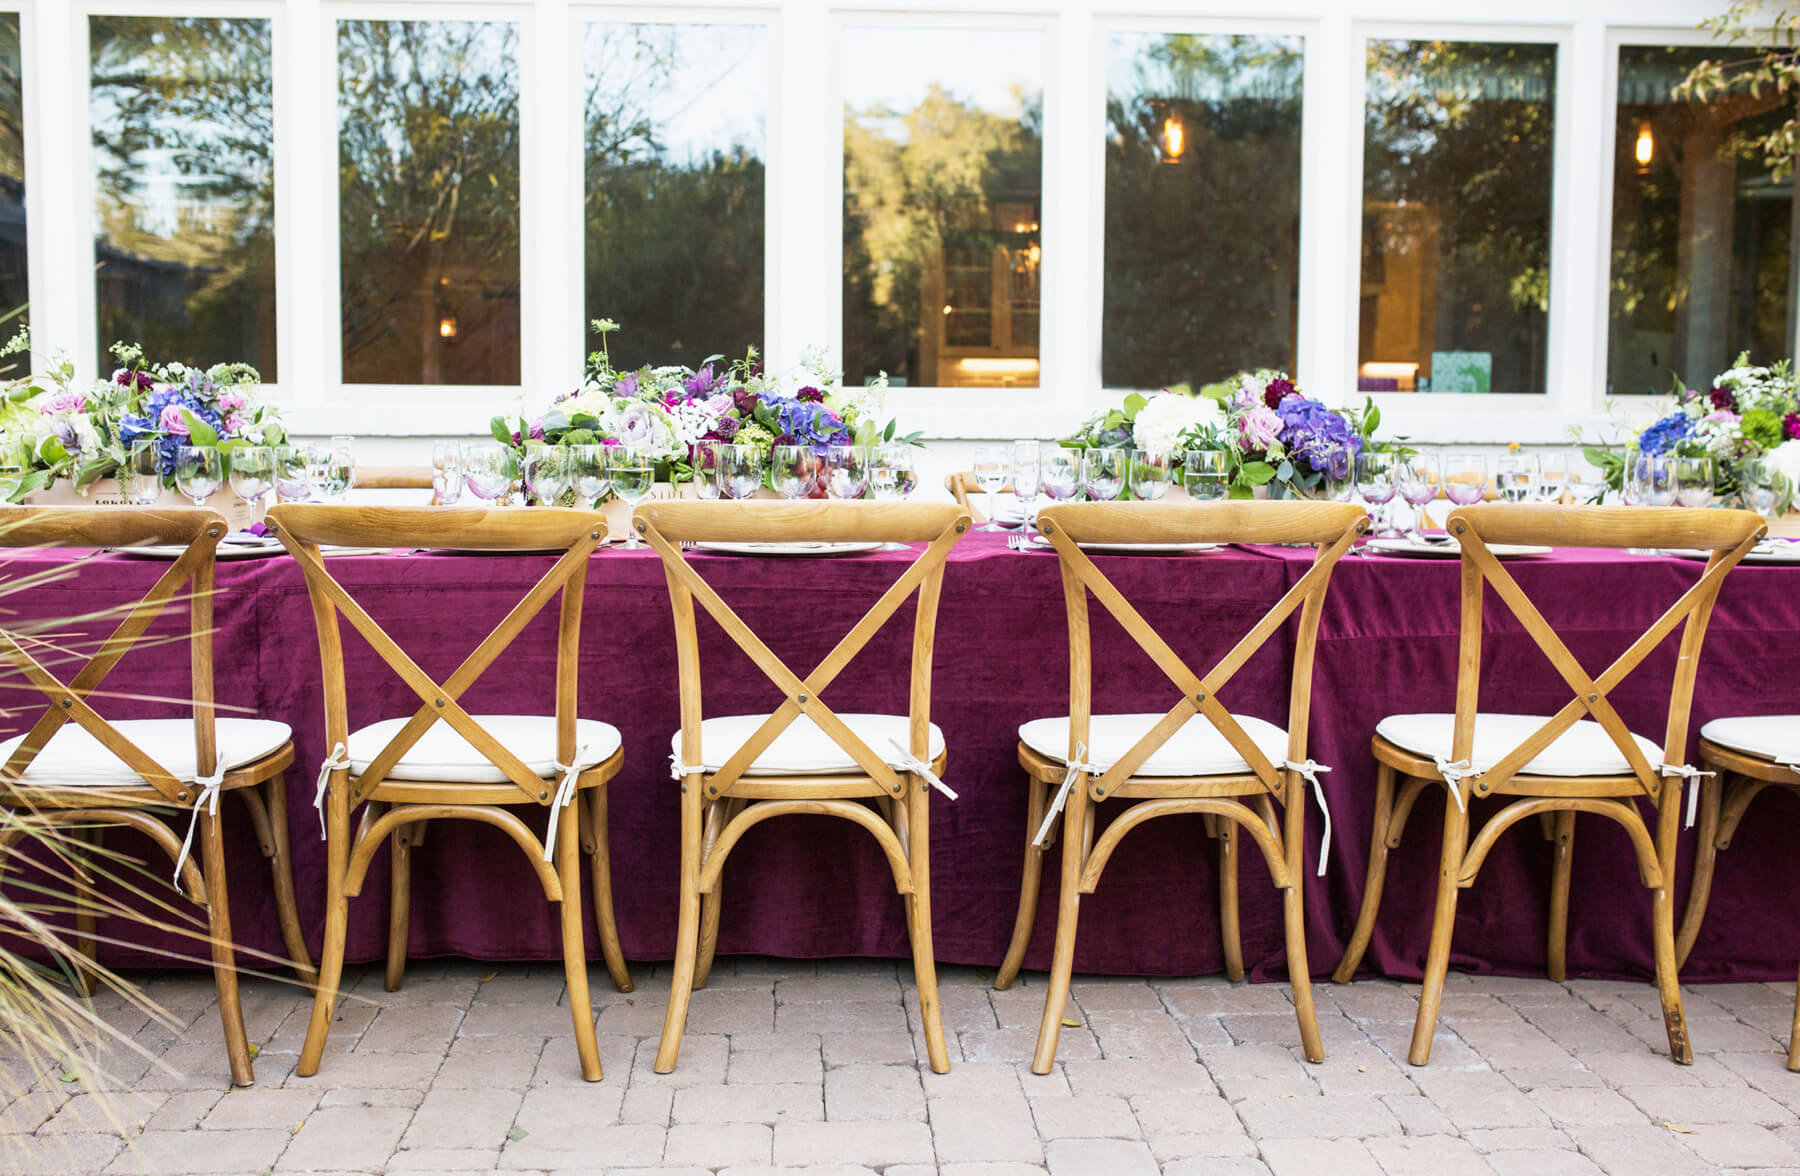 Tablescape from Wine Tasting Party styled by To Have + To Hold | Black Twine